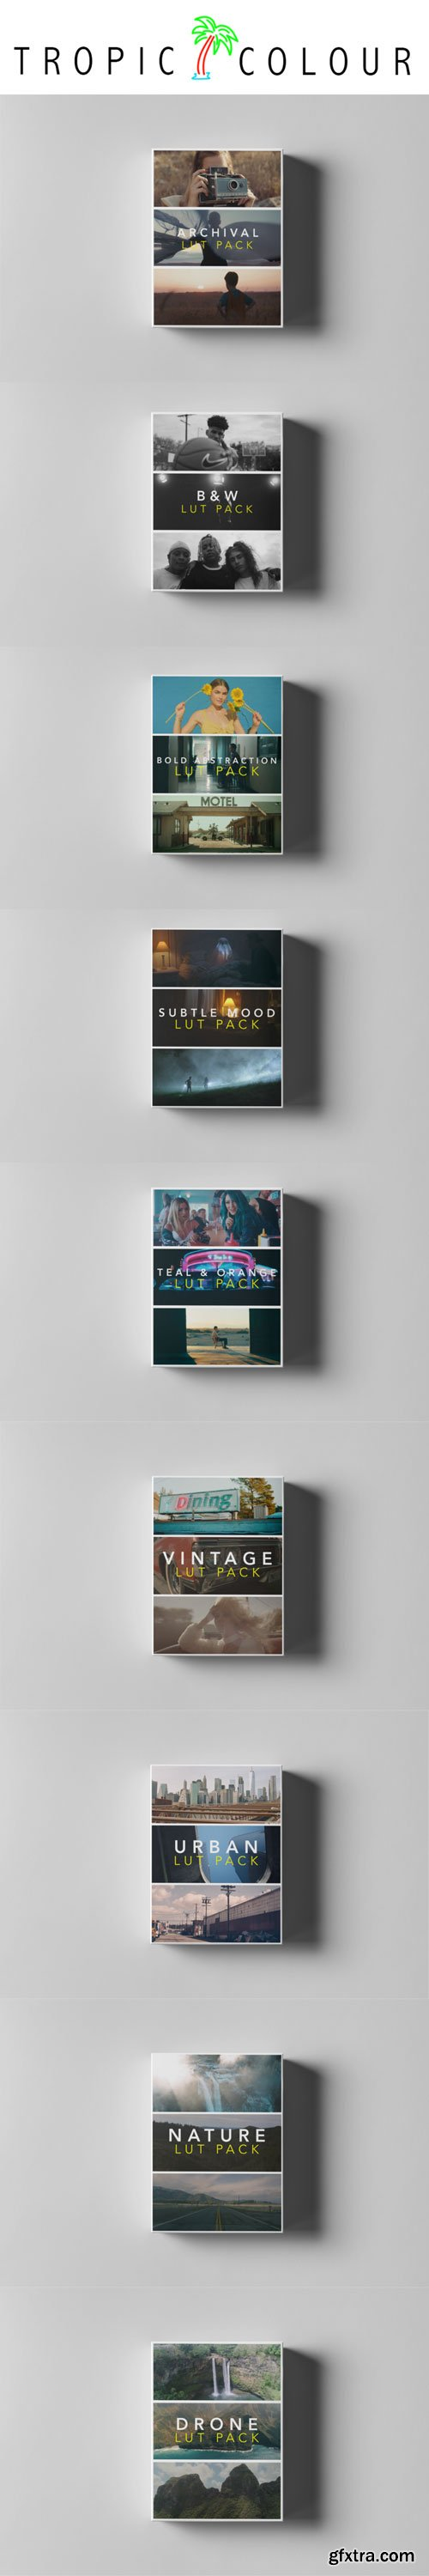 Tropic Colour - All LUTs Collections